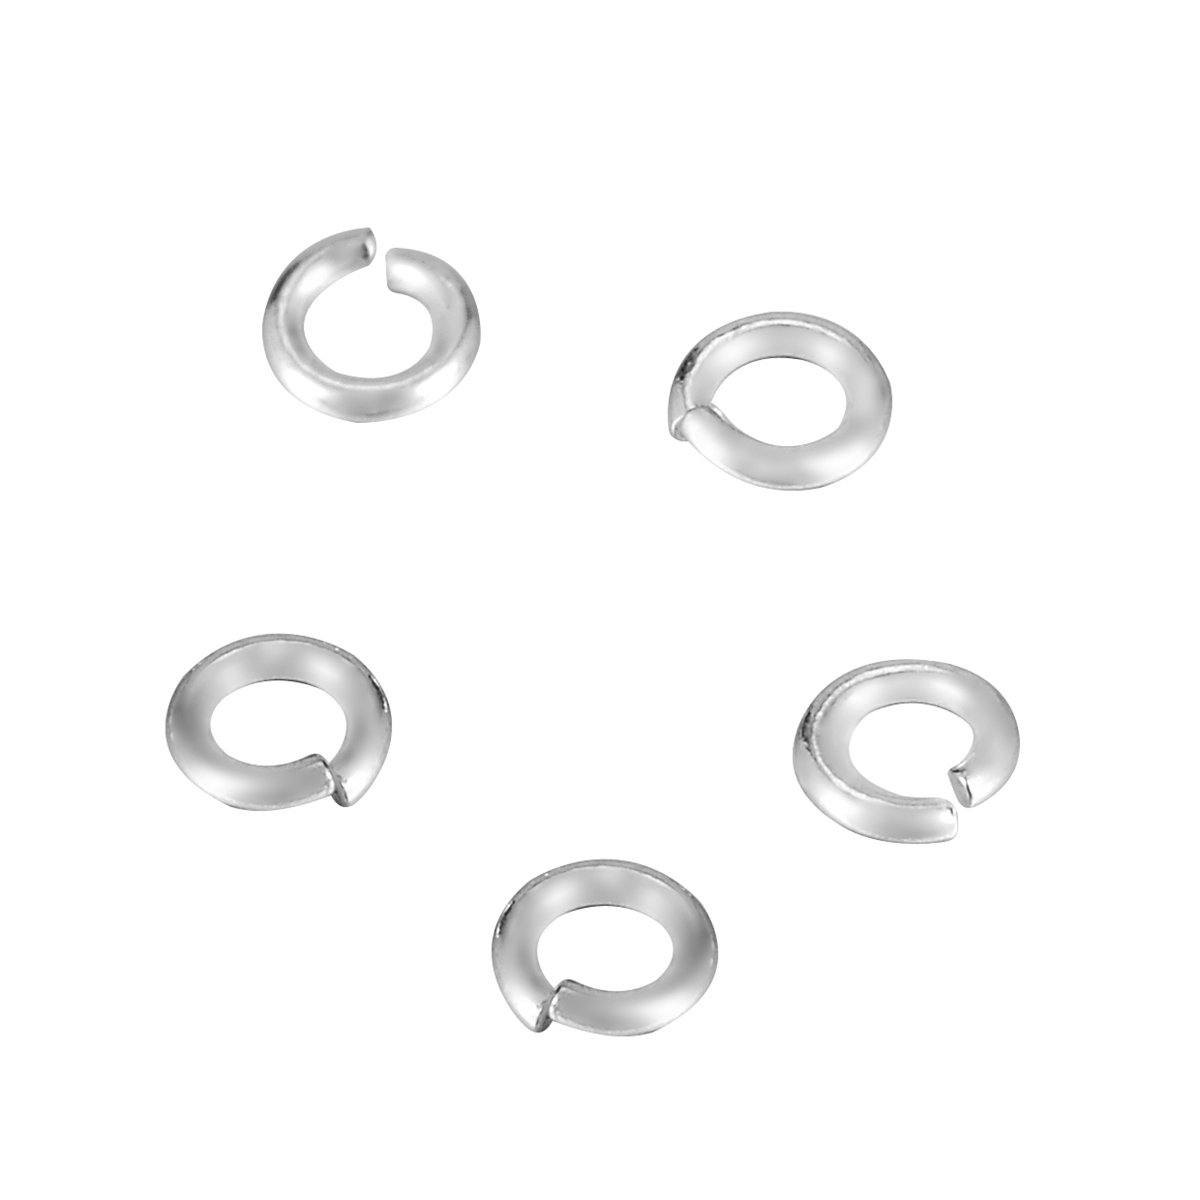 SG 180pcs 925 Sterling Silver Open Jump Ring Jewellery Making Findings 3mmx0.6mm SGto-B288896